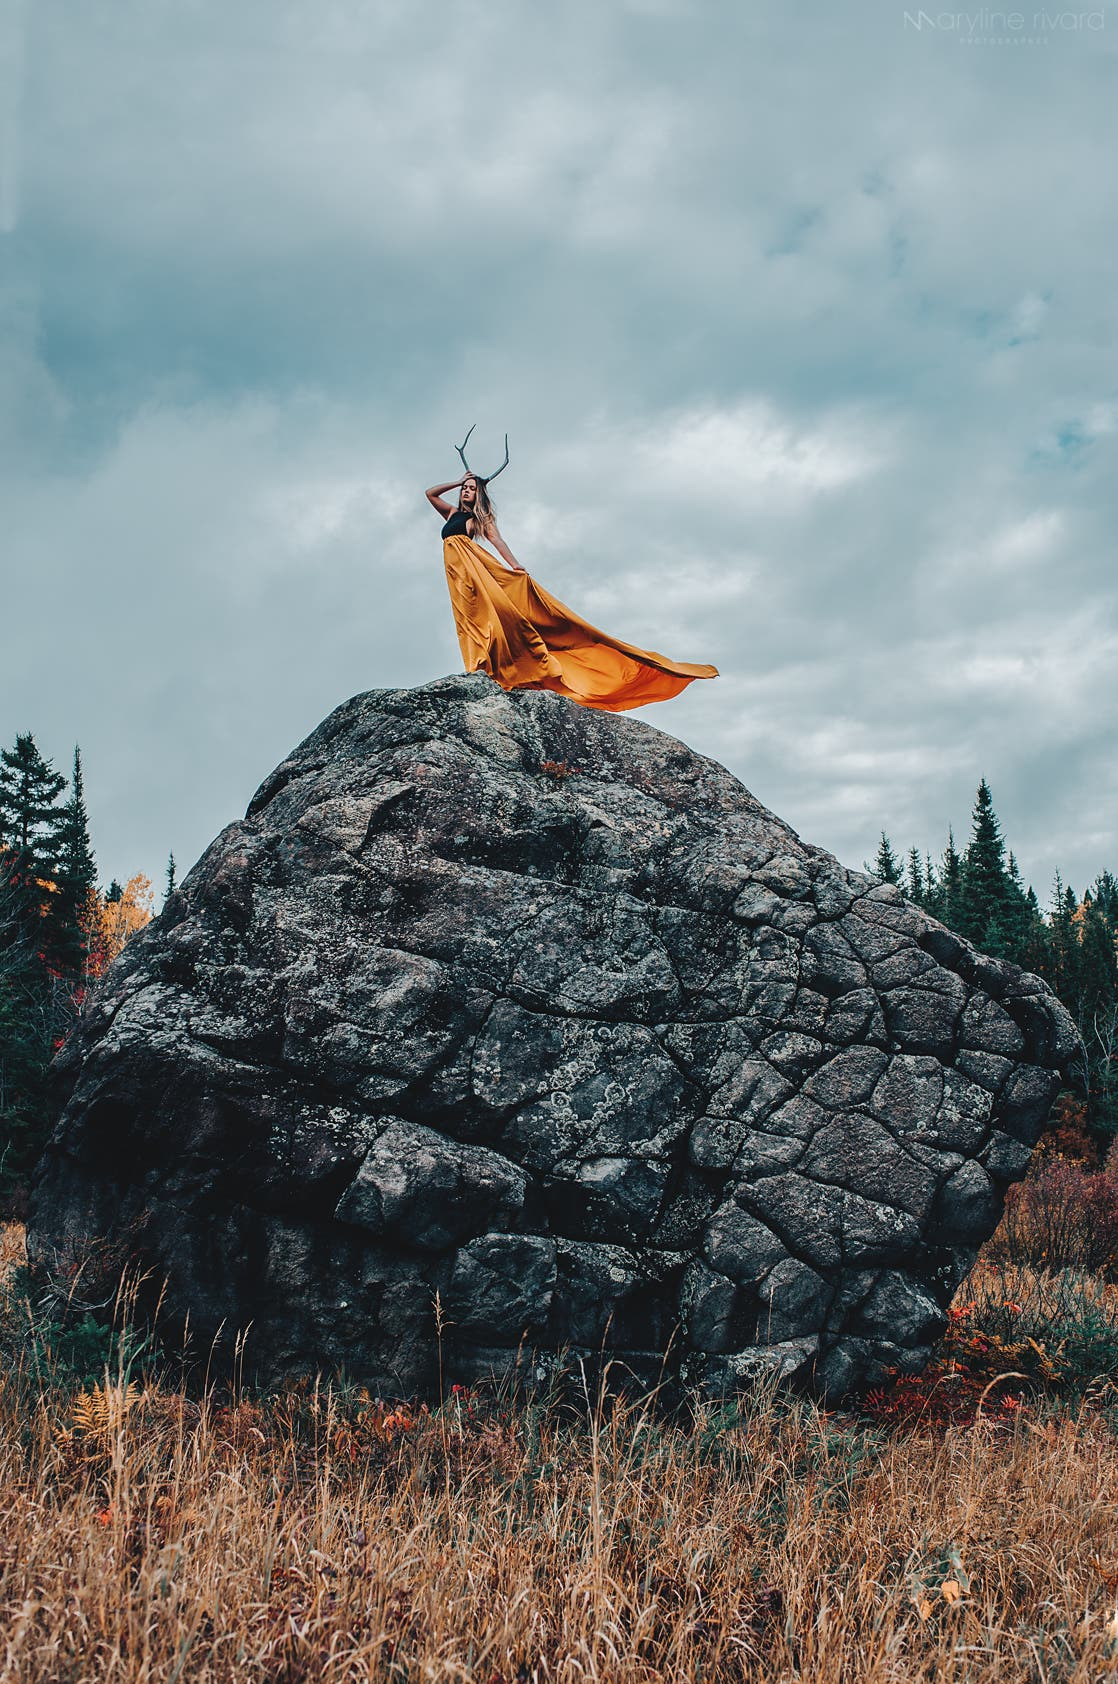 Maryline Rivard's Conceptual Photos Convey Magical Levels of Inspiration